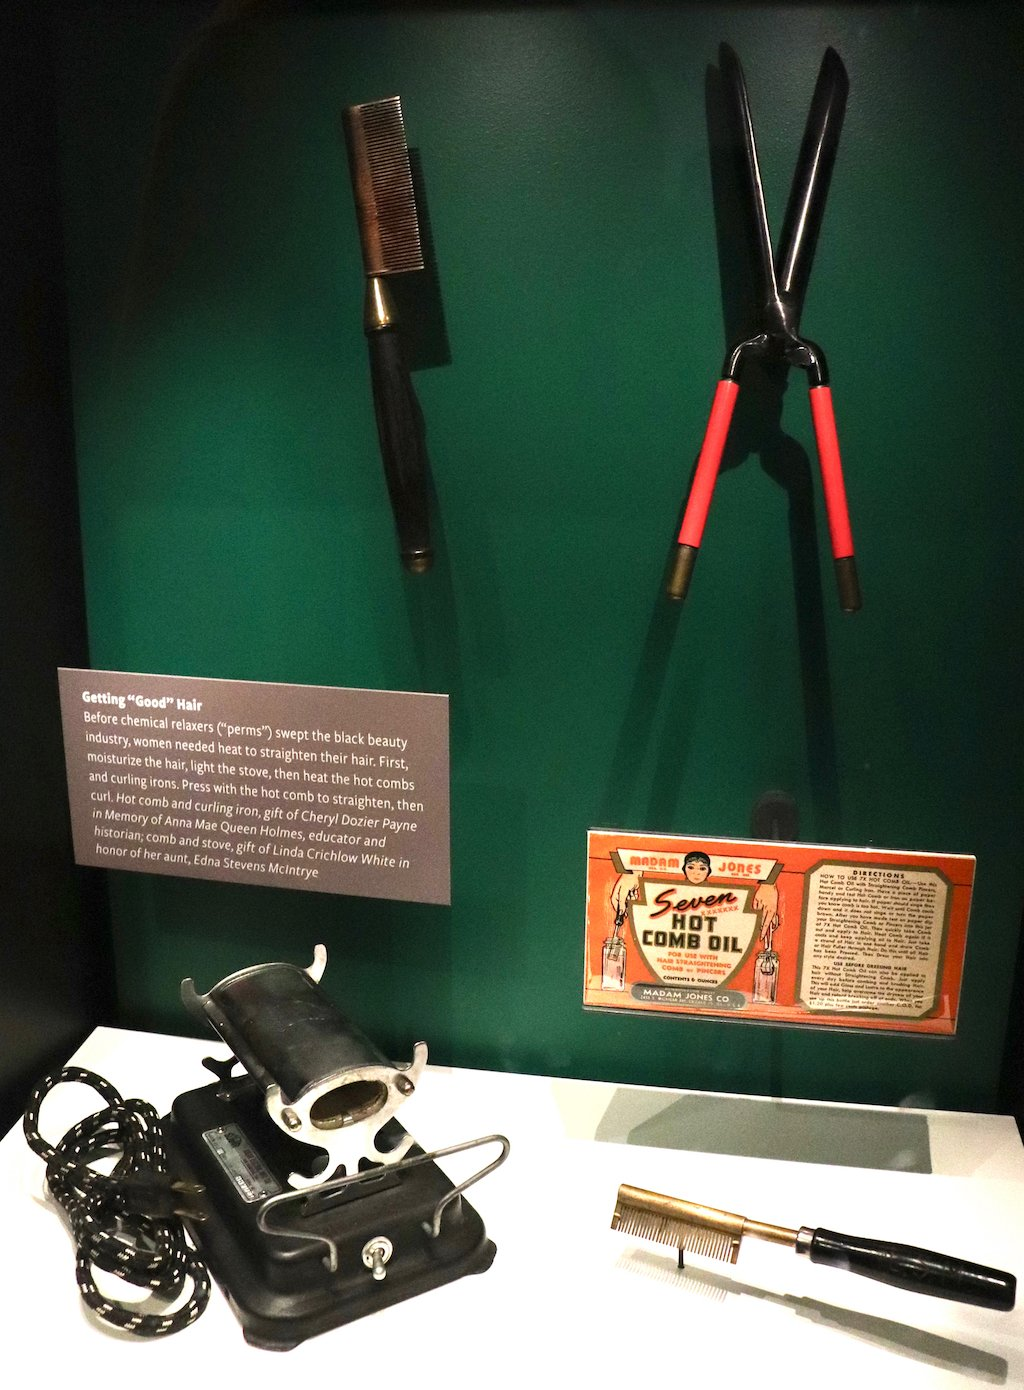 National Museum of African American History and Culture Hot Comb